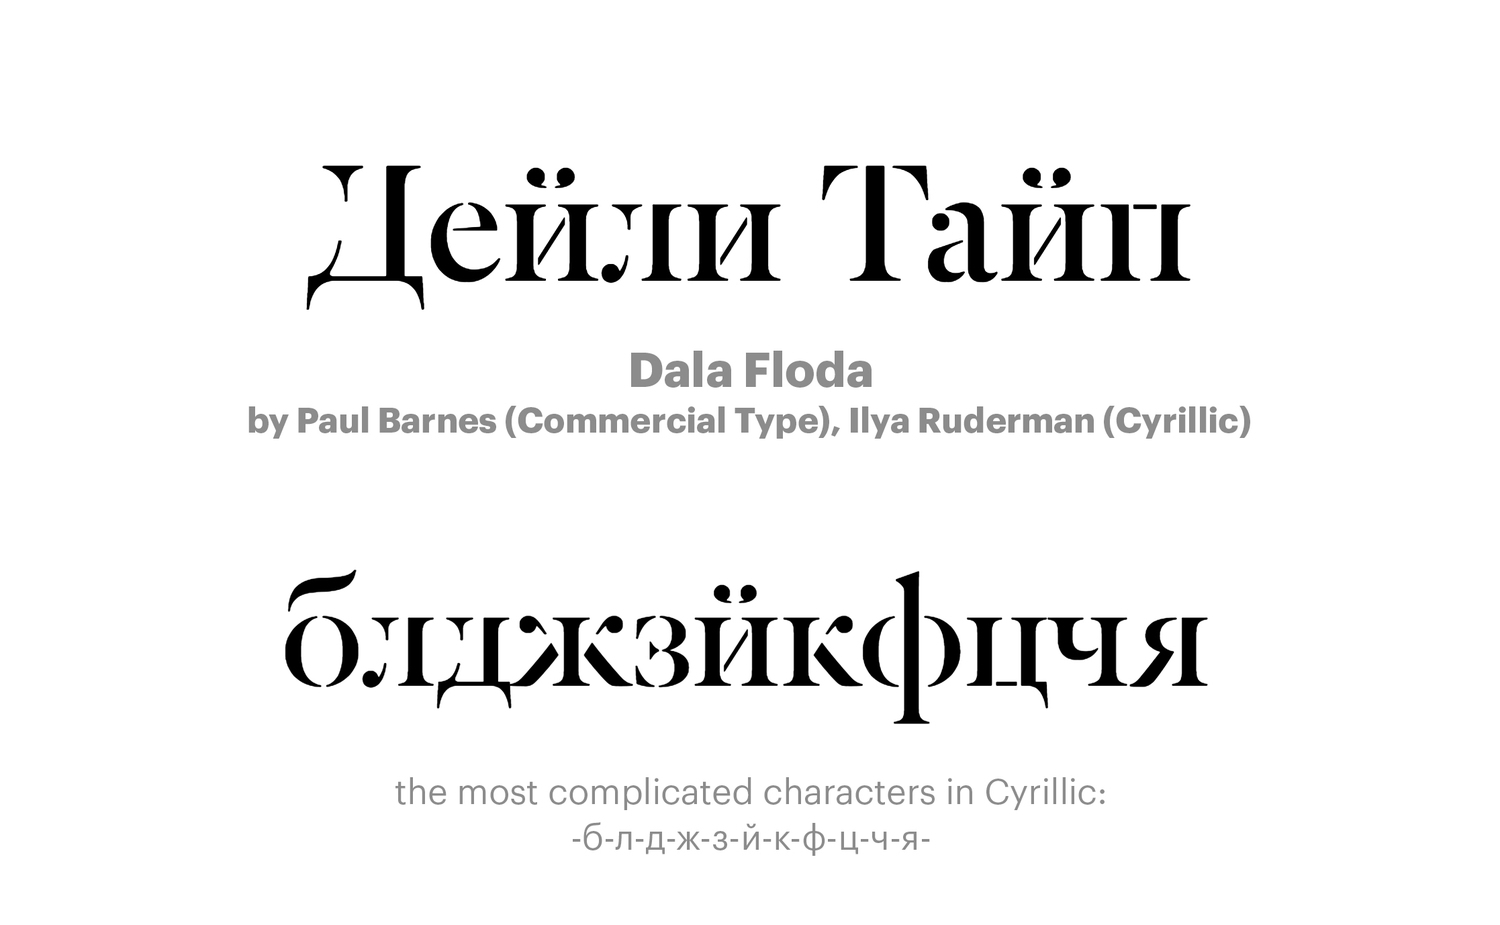 Dala-Floda-by-Paul-Barnes,-Ilya-Ruderman-(type.today)